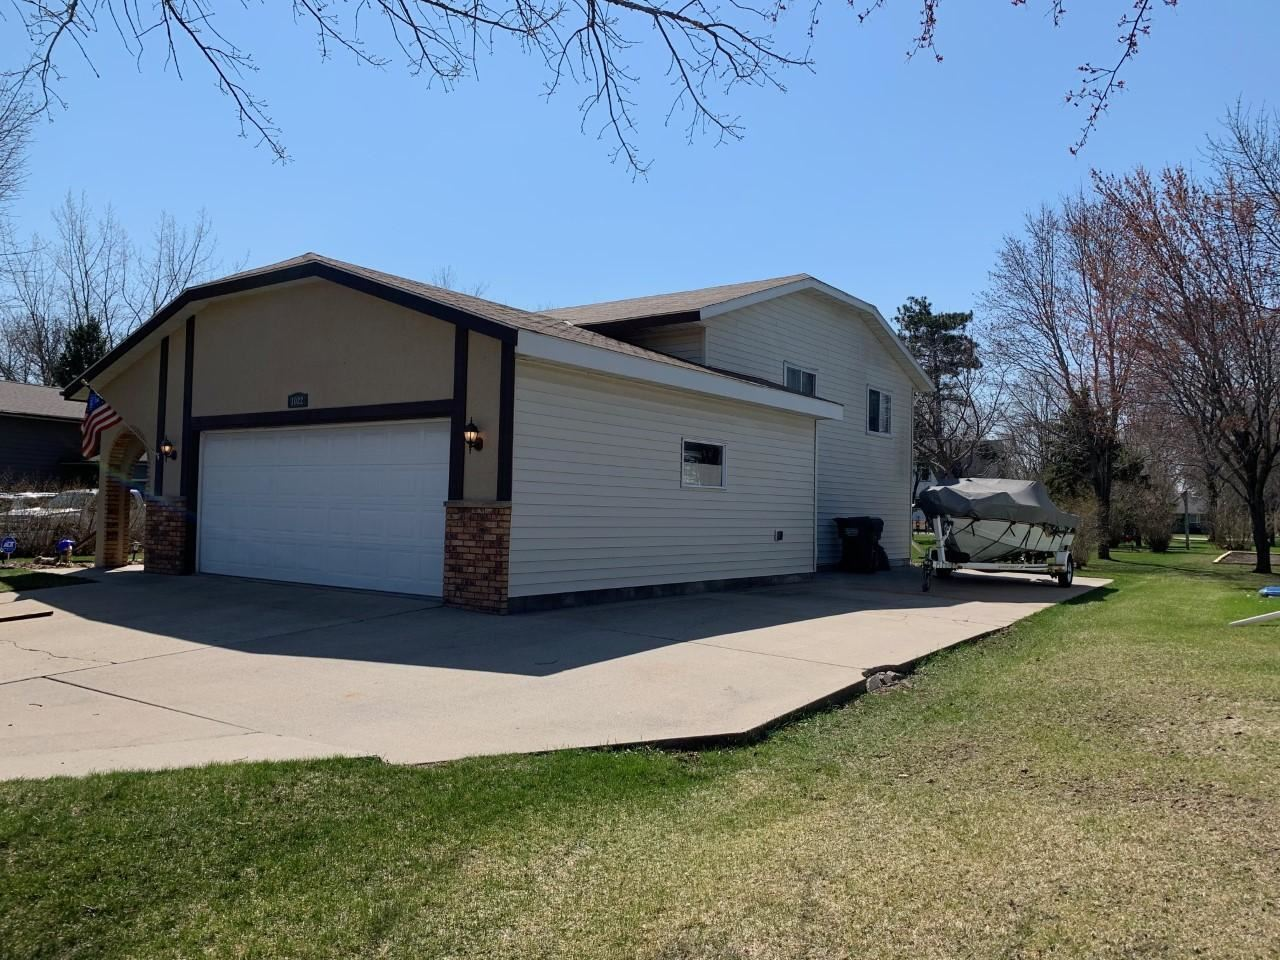 Photo of 1022 1st Street N, Cold Spring, MN 56320 (MLS # 5745016)